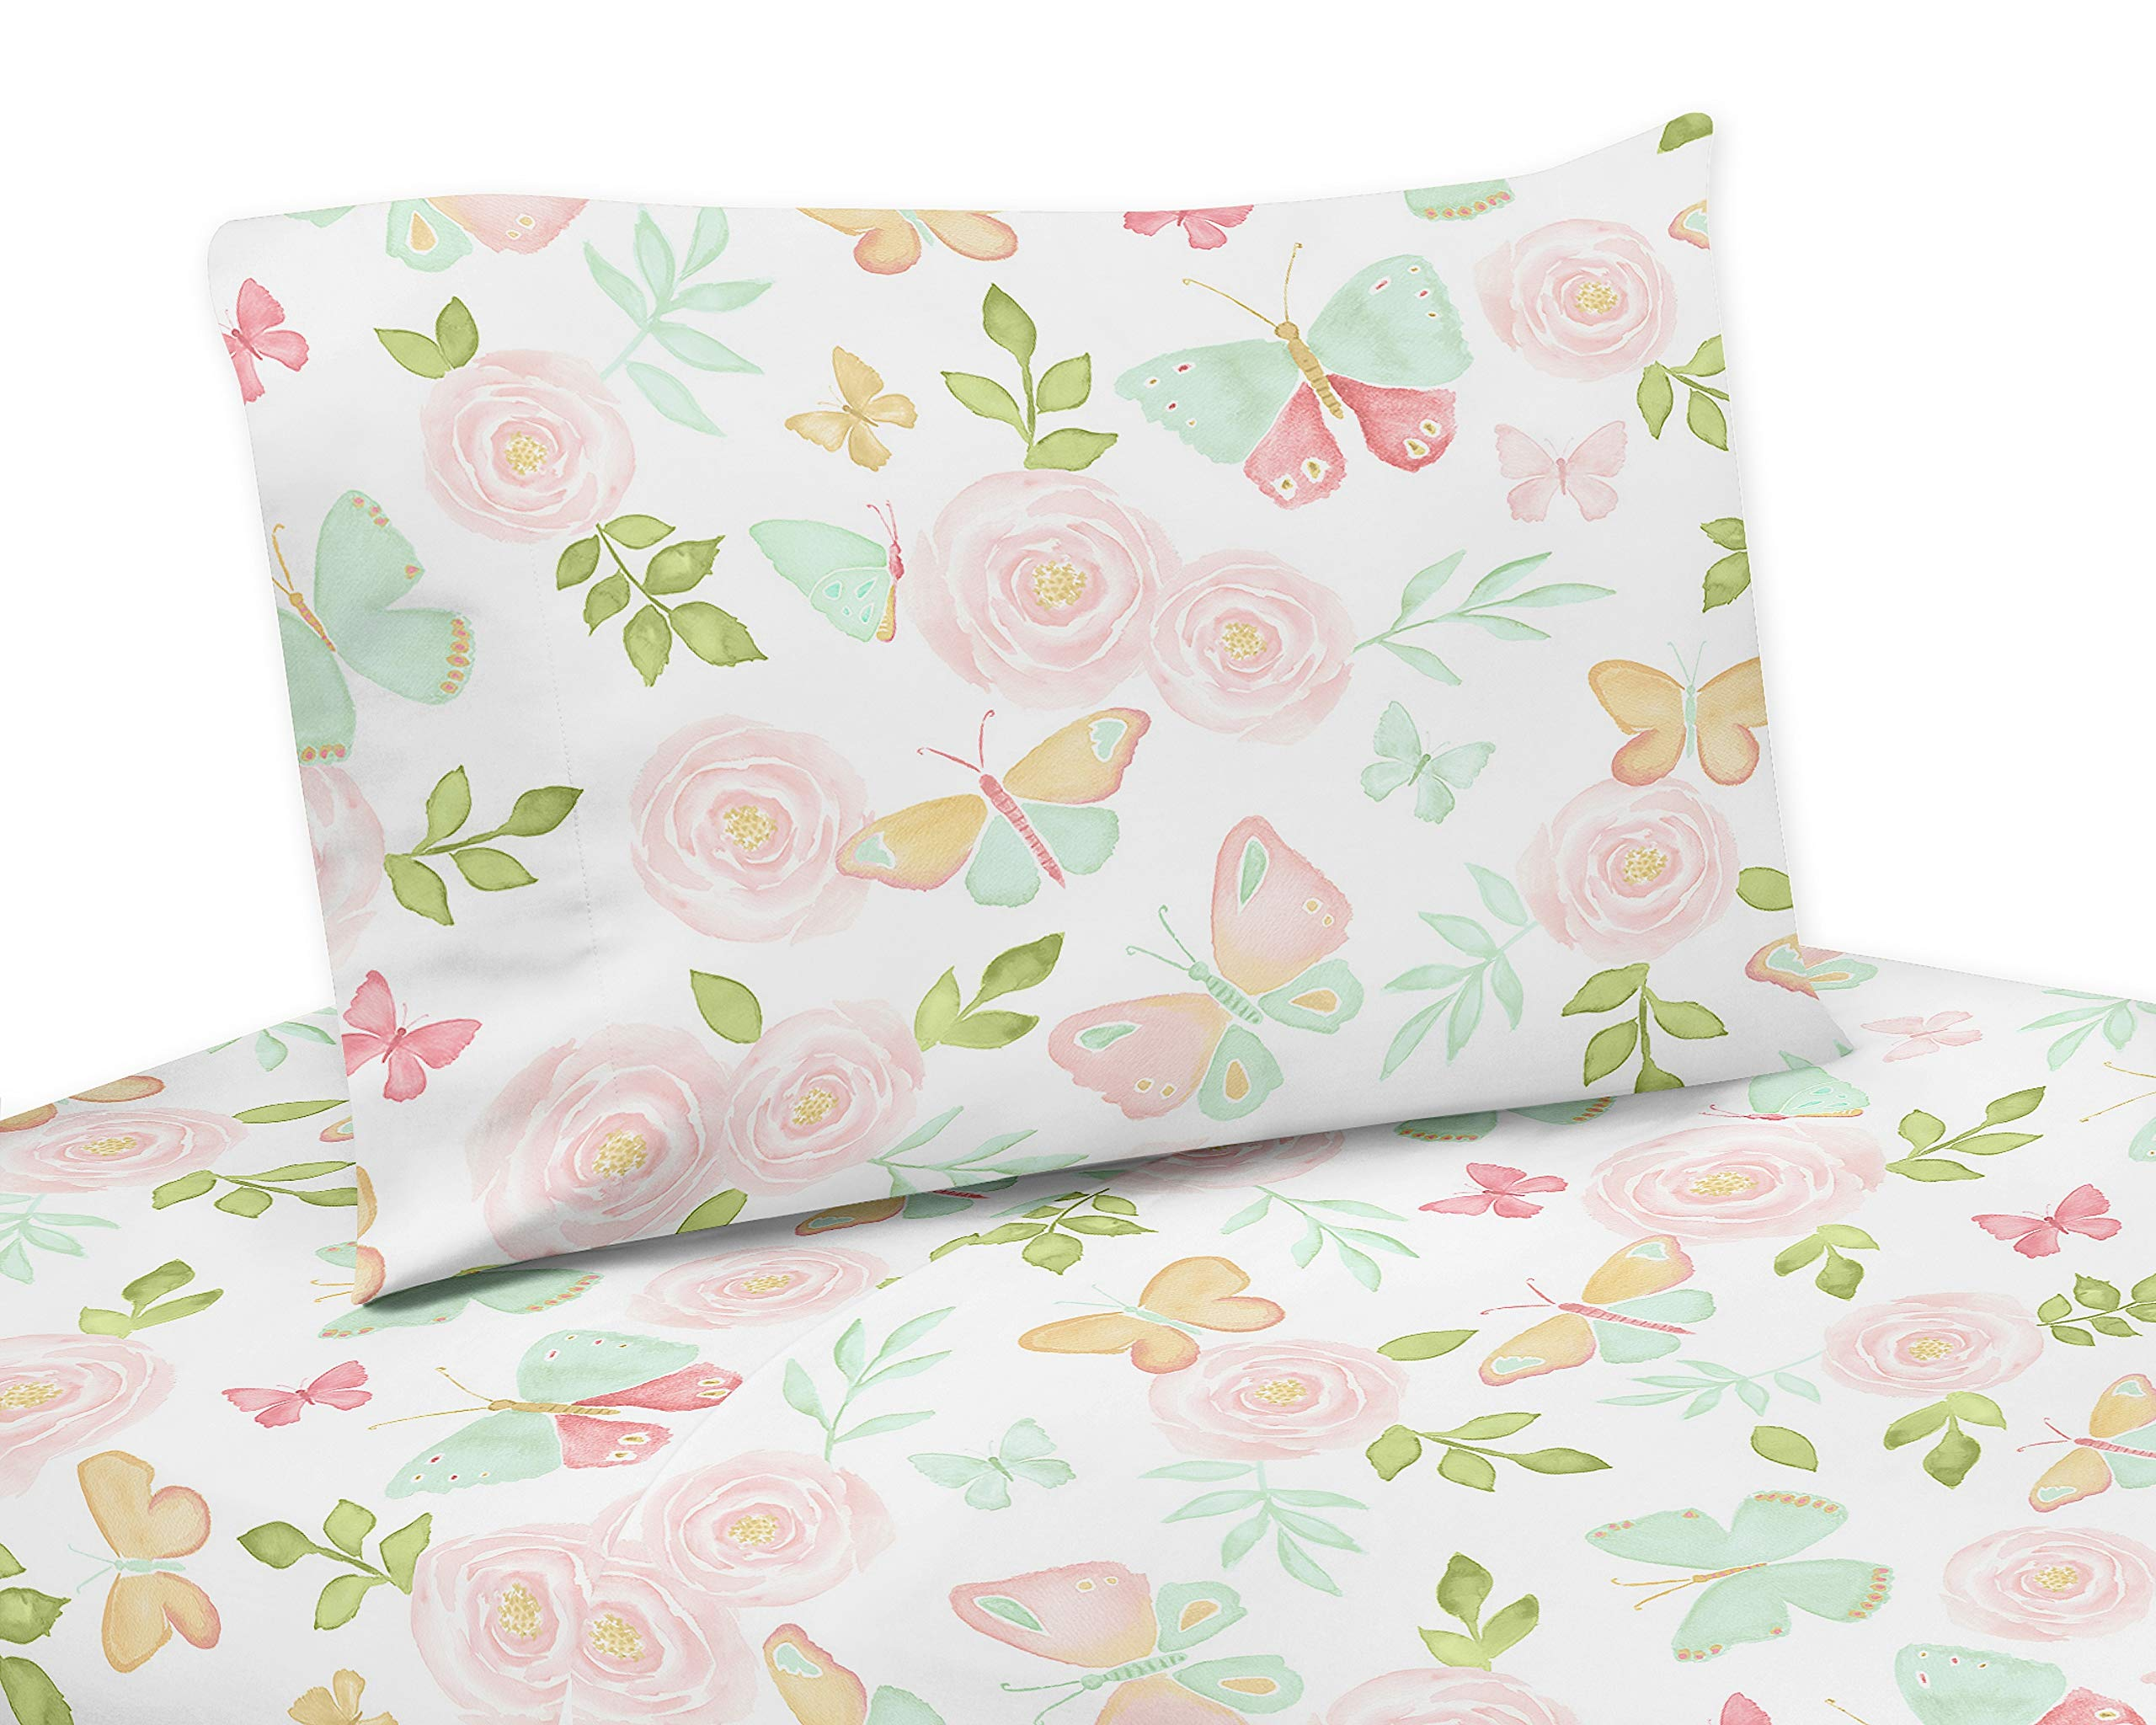 Sweet Jojo Designs Blush Pink, Mint and White Watercolor Rose Queen Sheet Butterfly Floral Collection - 4 Piece Set, Green, Gold